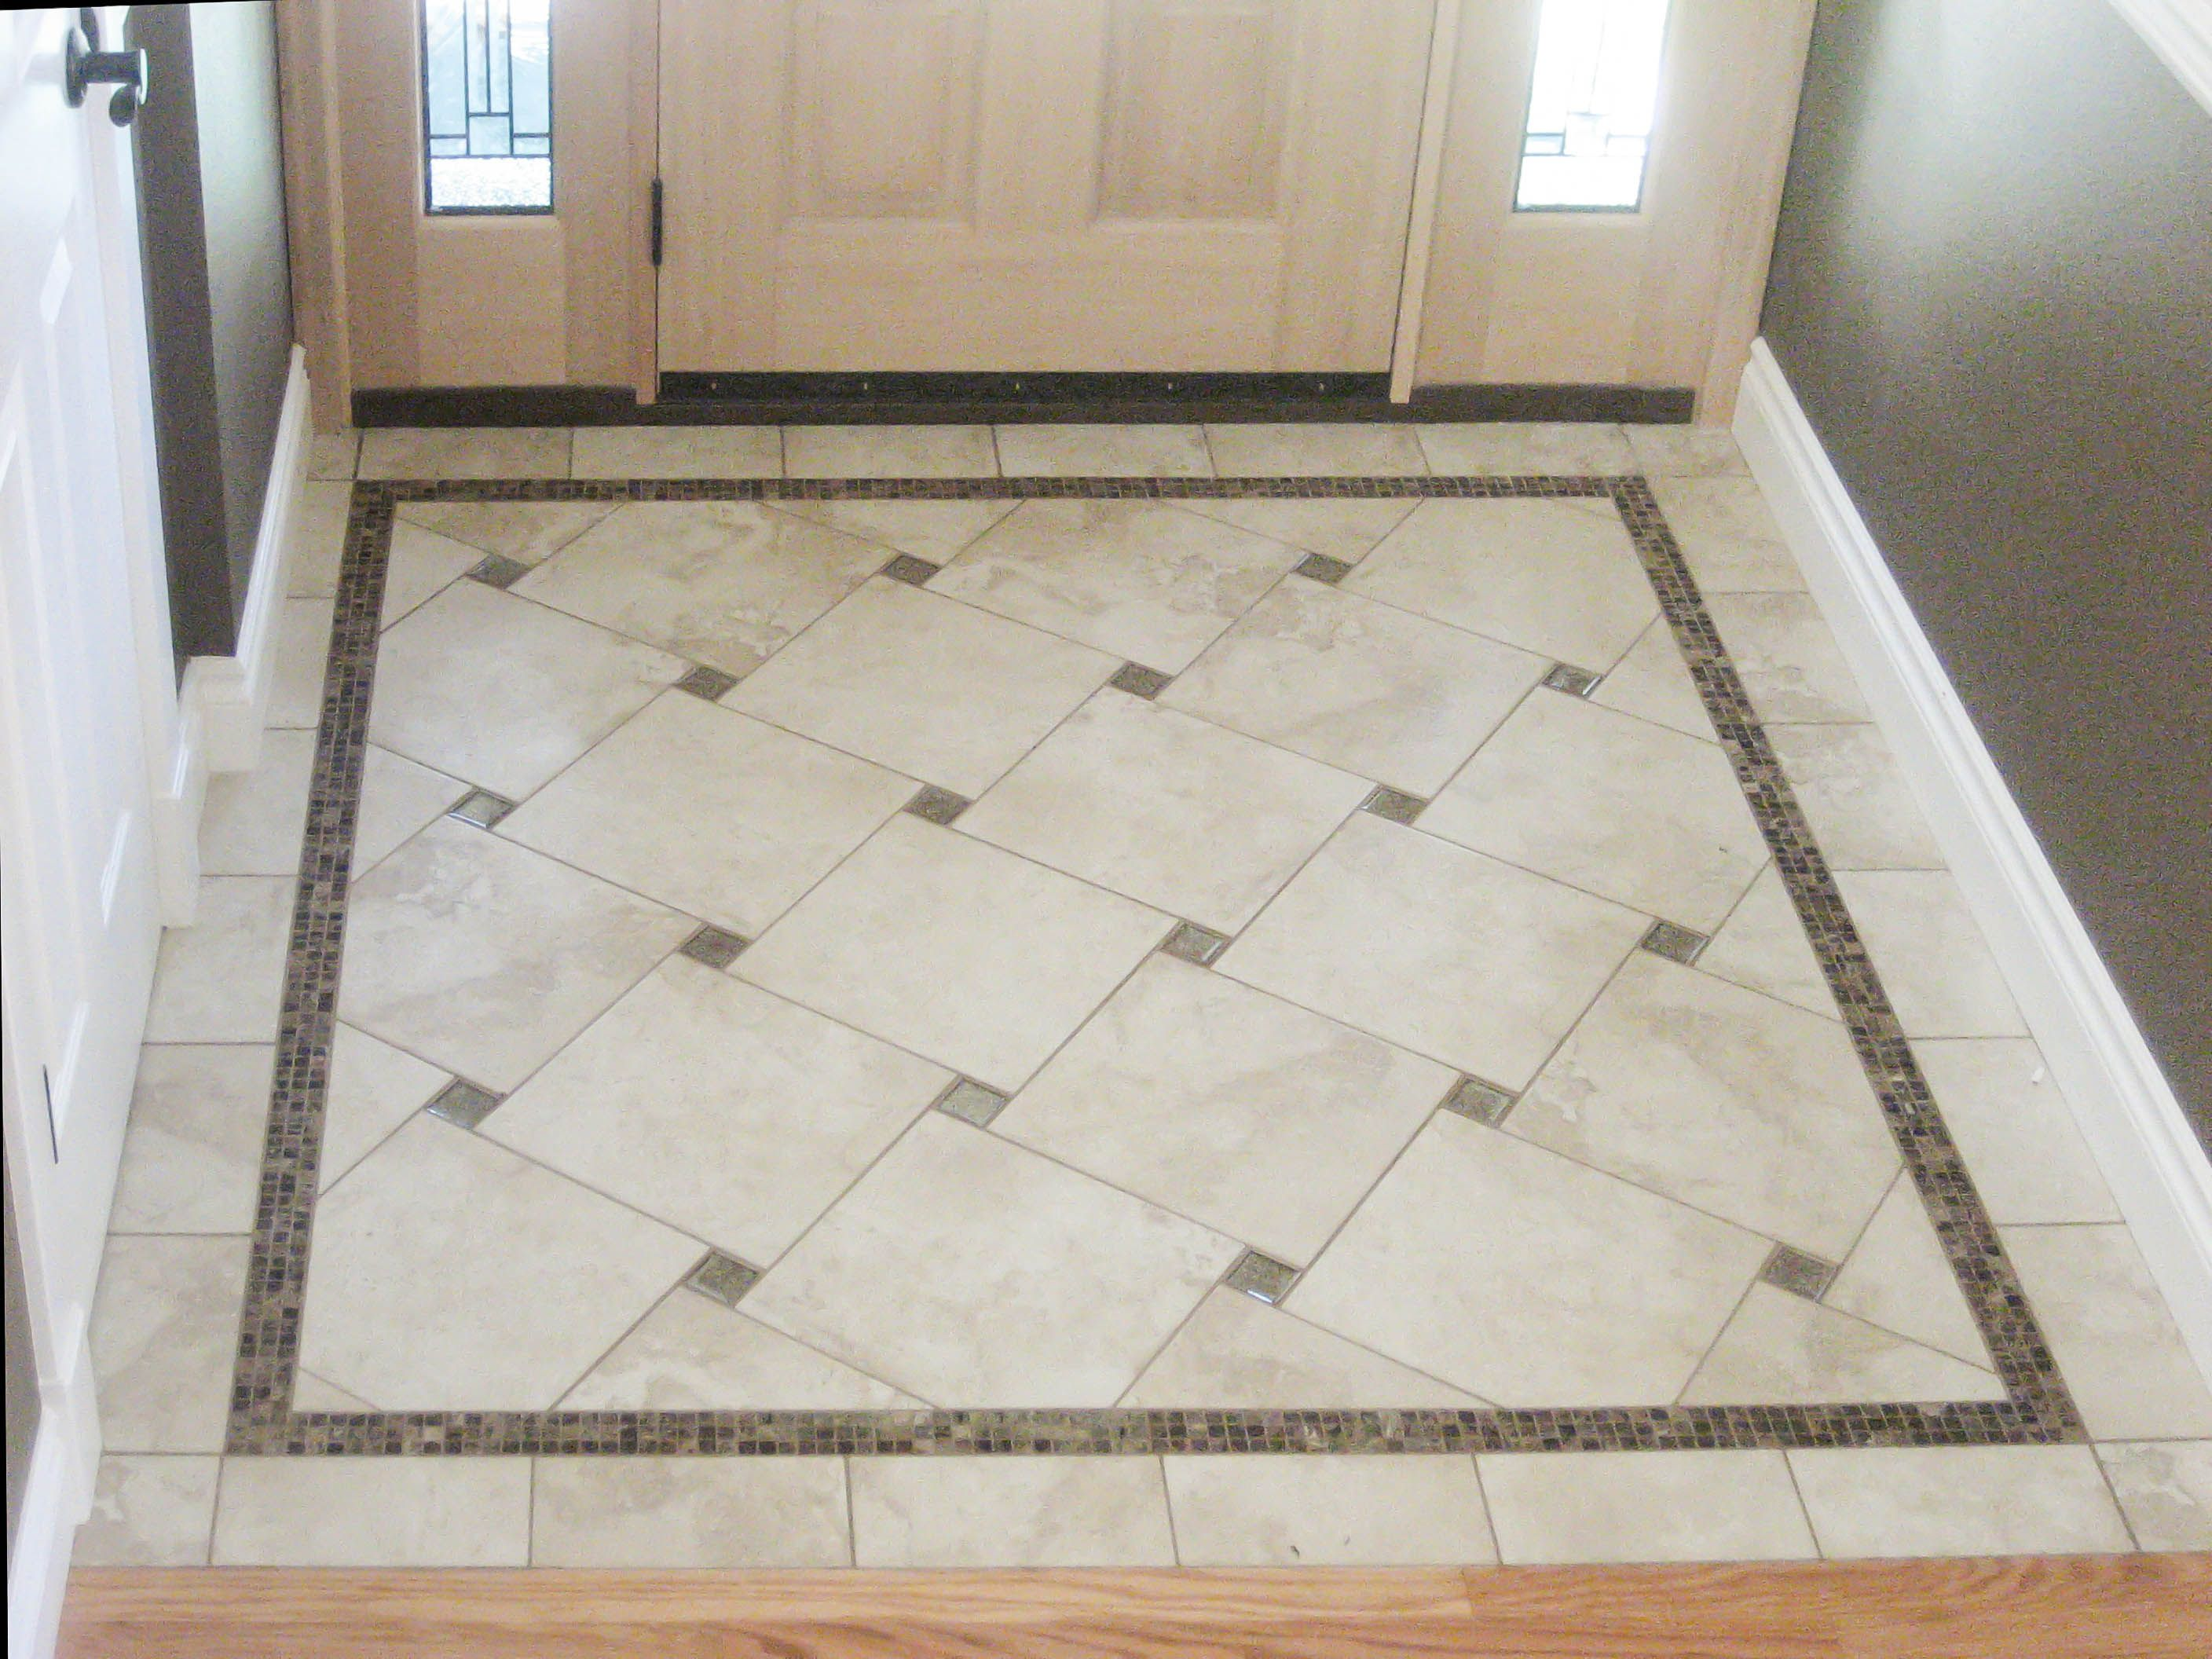 floor tile patterns entry floor tile ideas | entry floor photos gallery - seattle tile ZOFKRVP